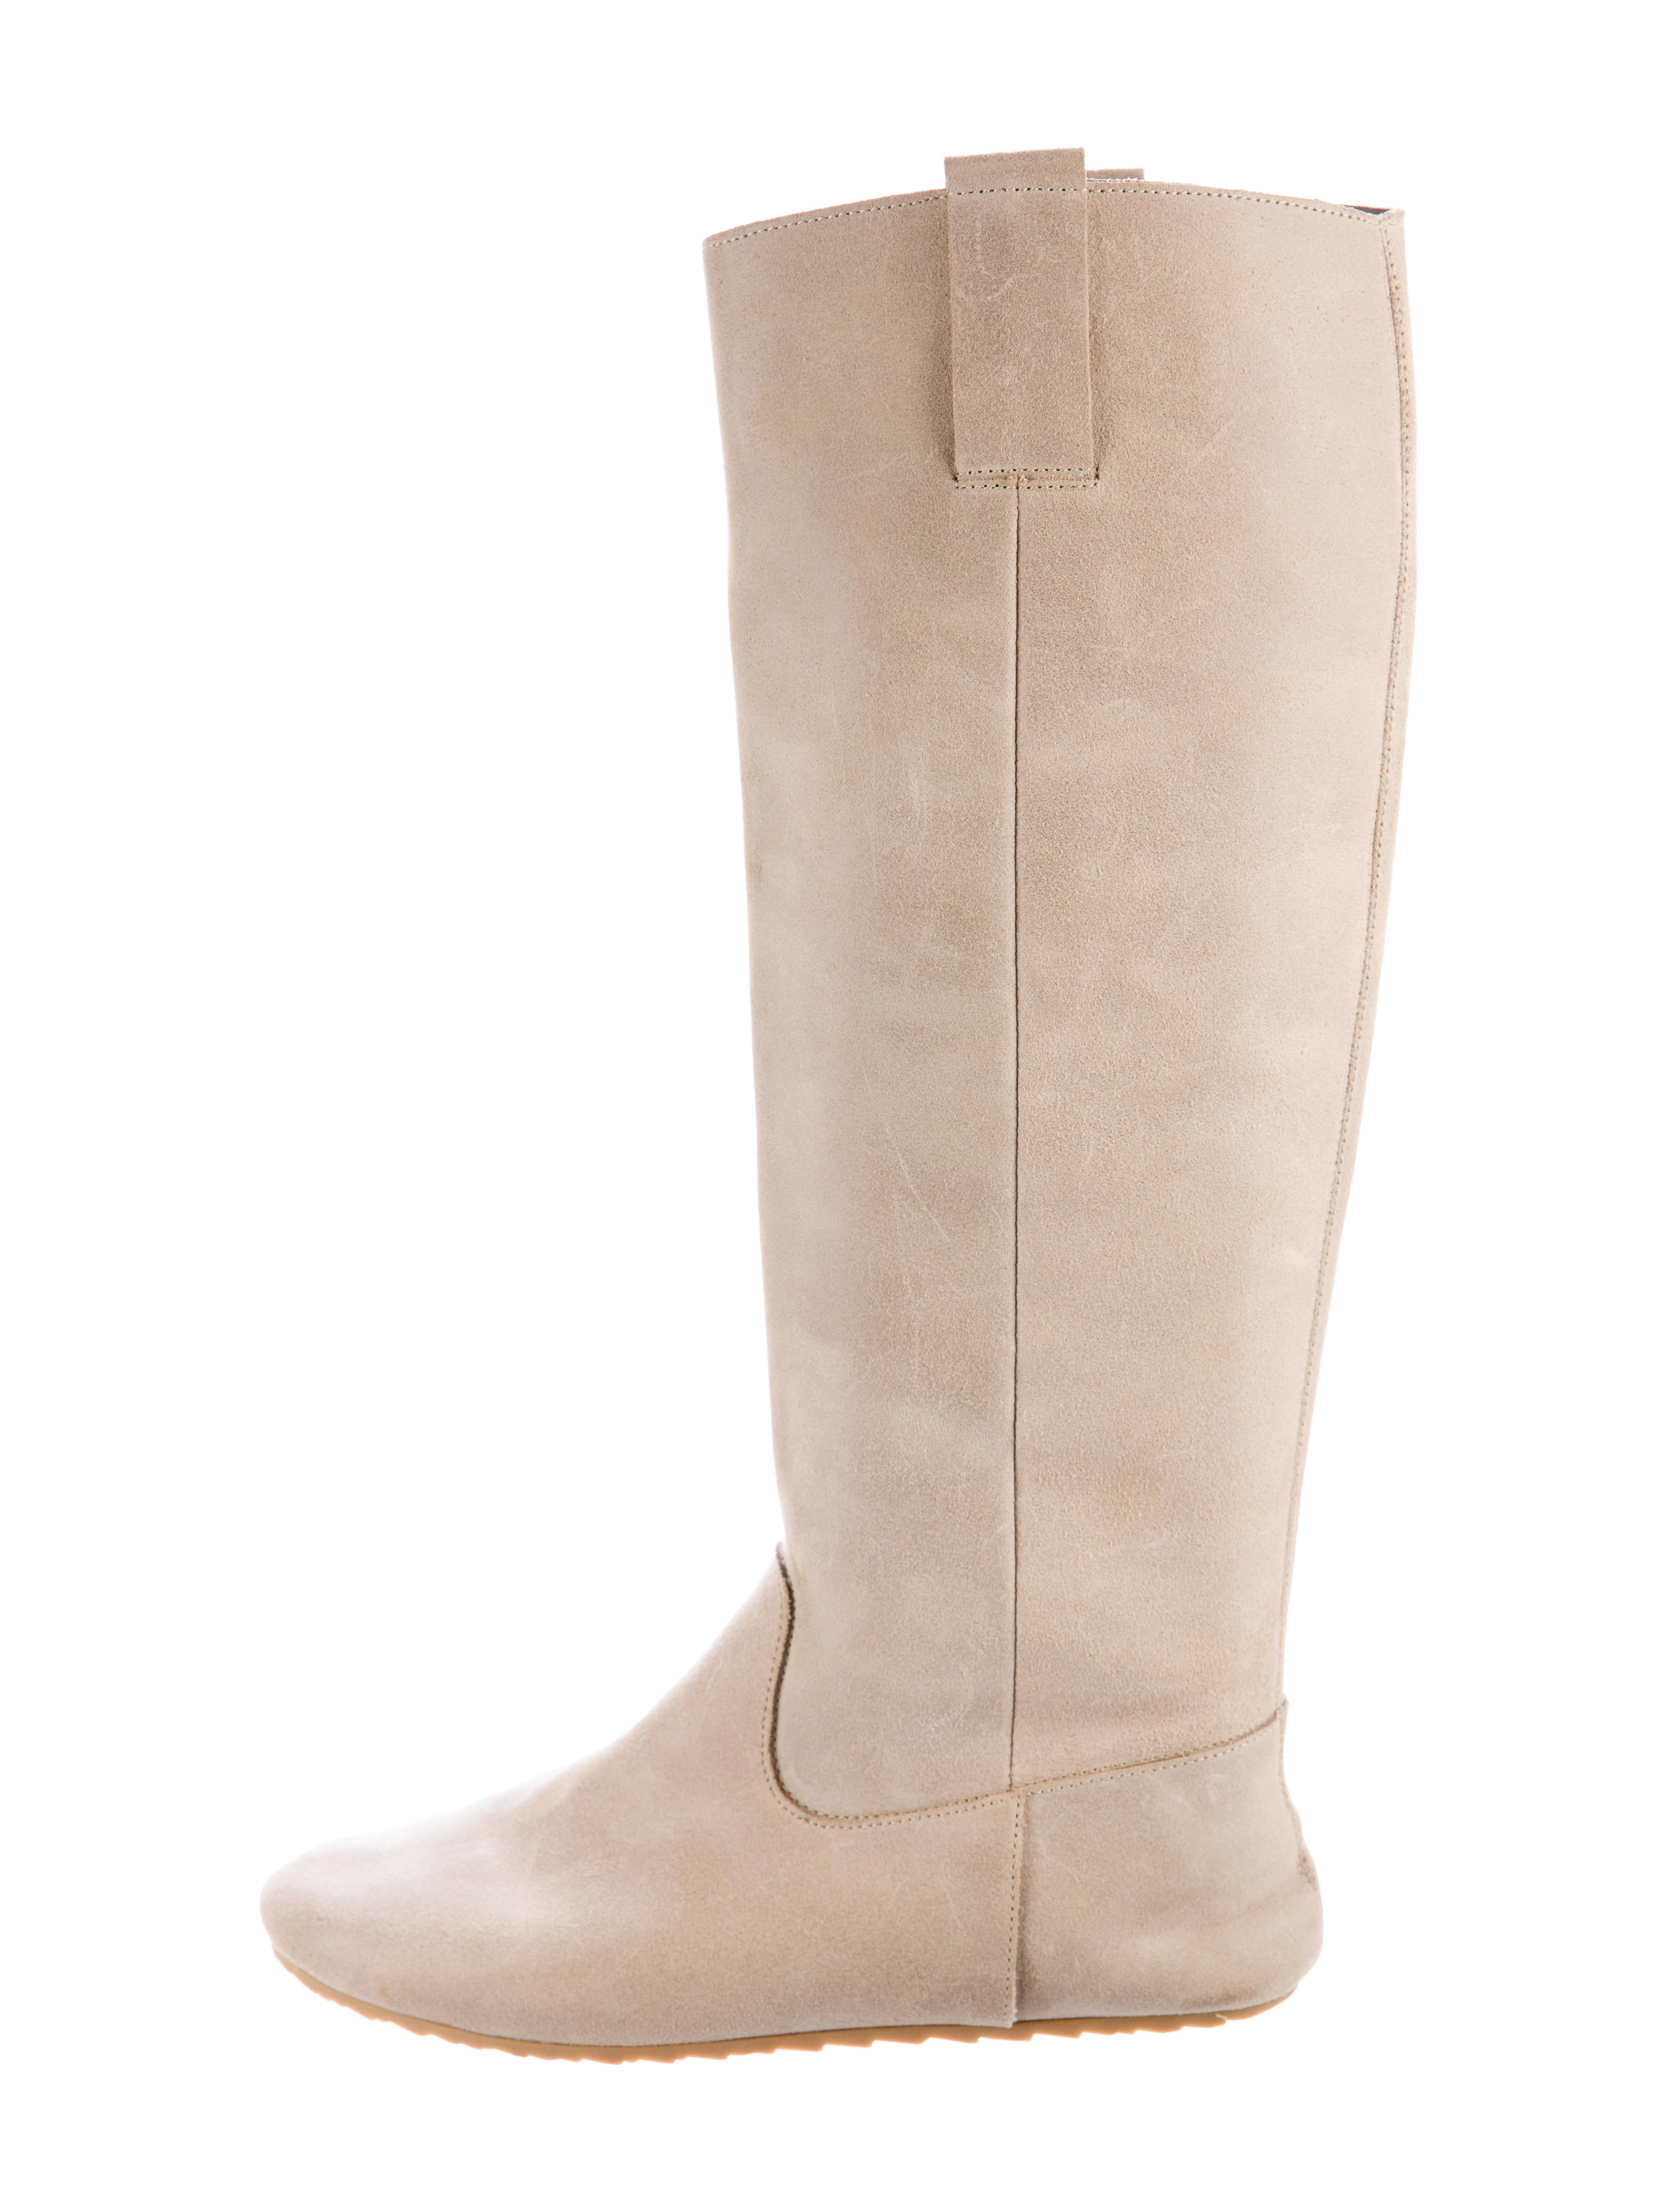 mm6 by maison martin margiela suede knee high boots